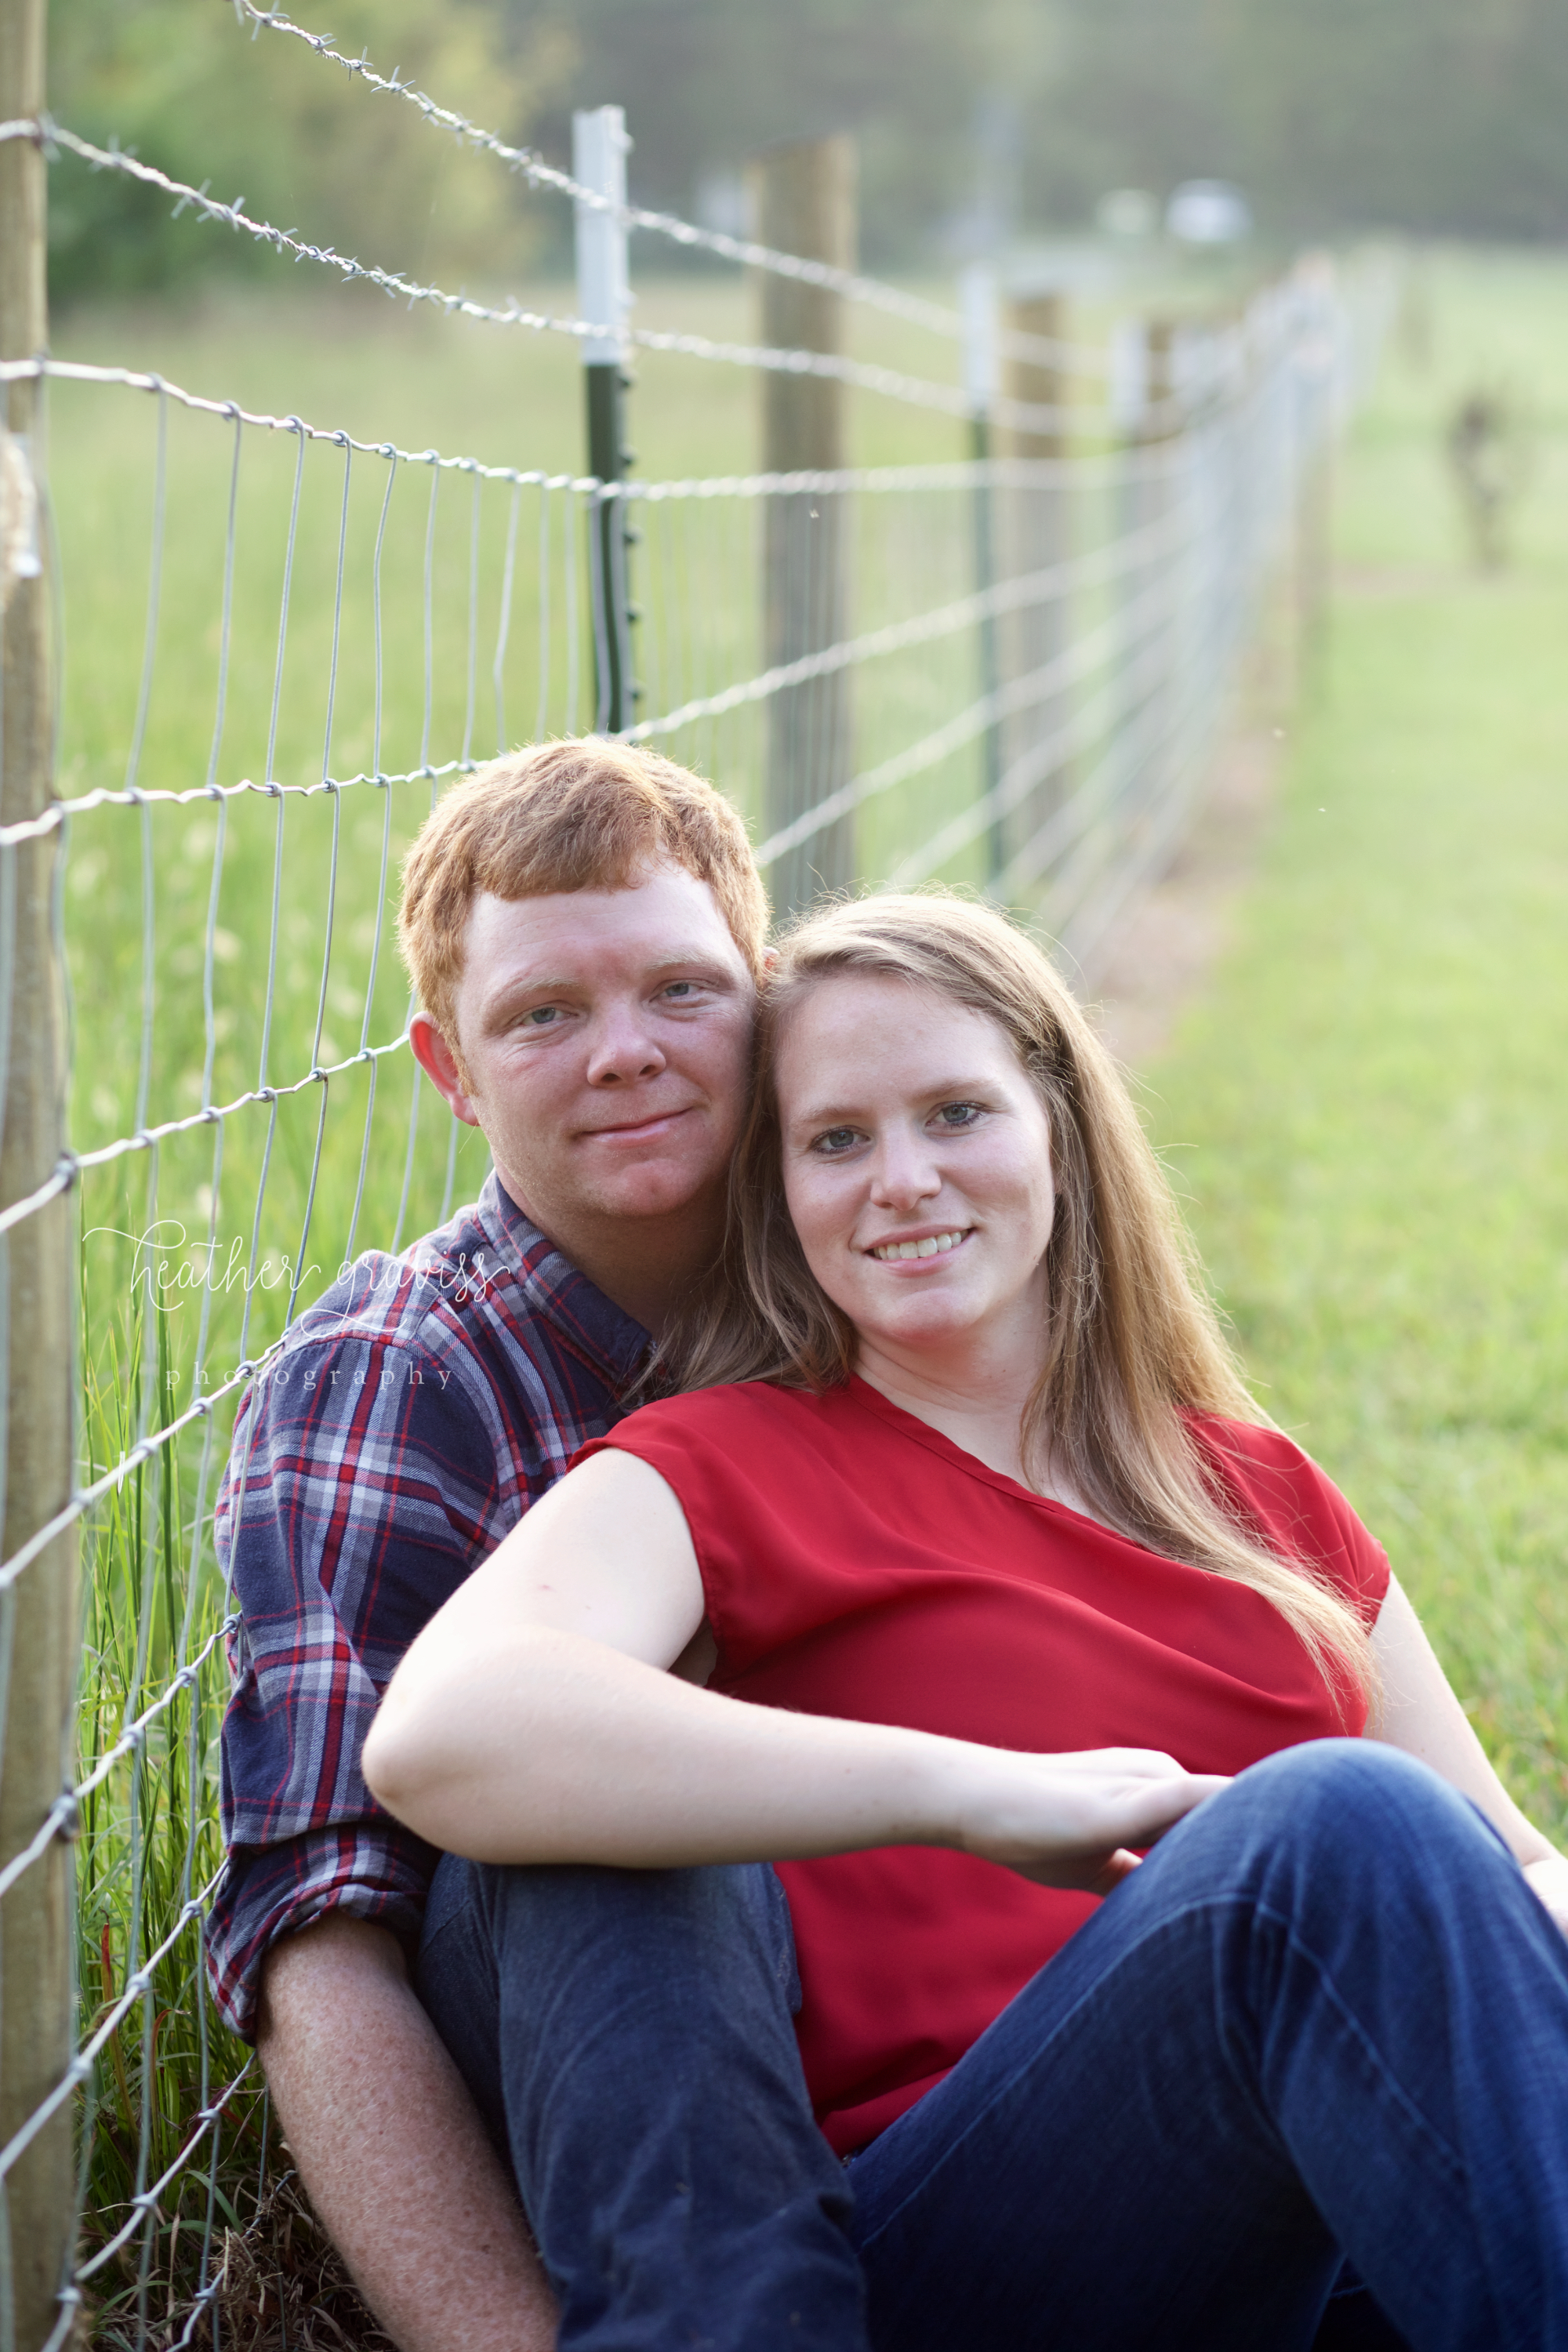 nashville middle tn engagement photographer 277.jpg